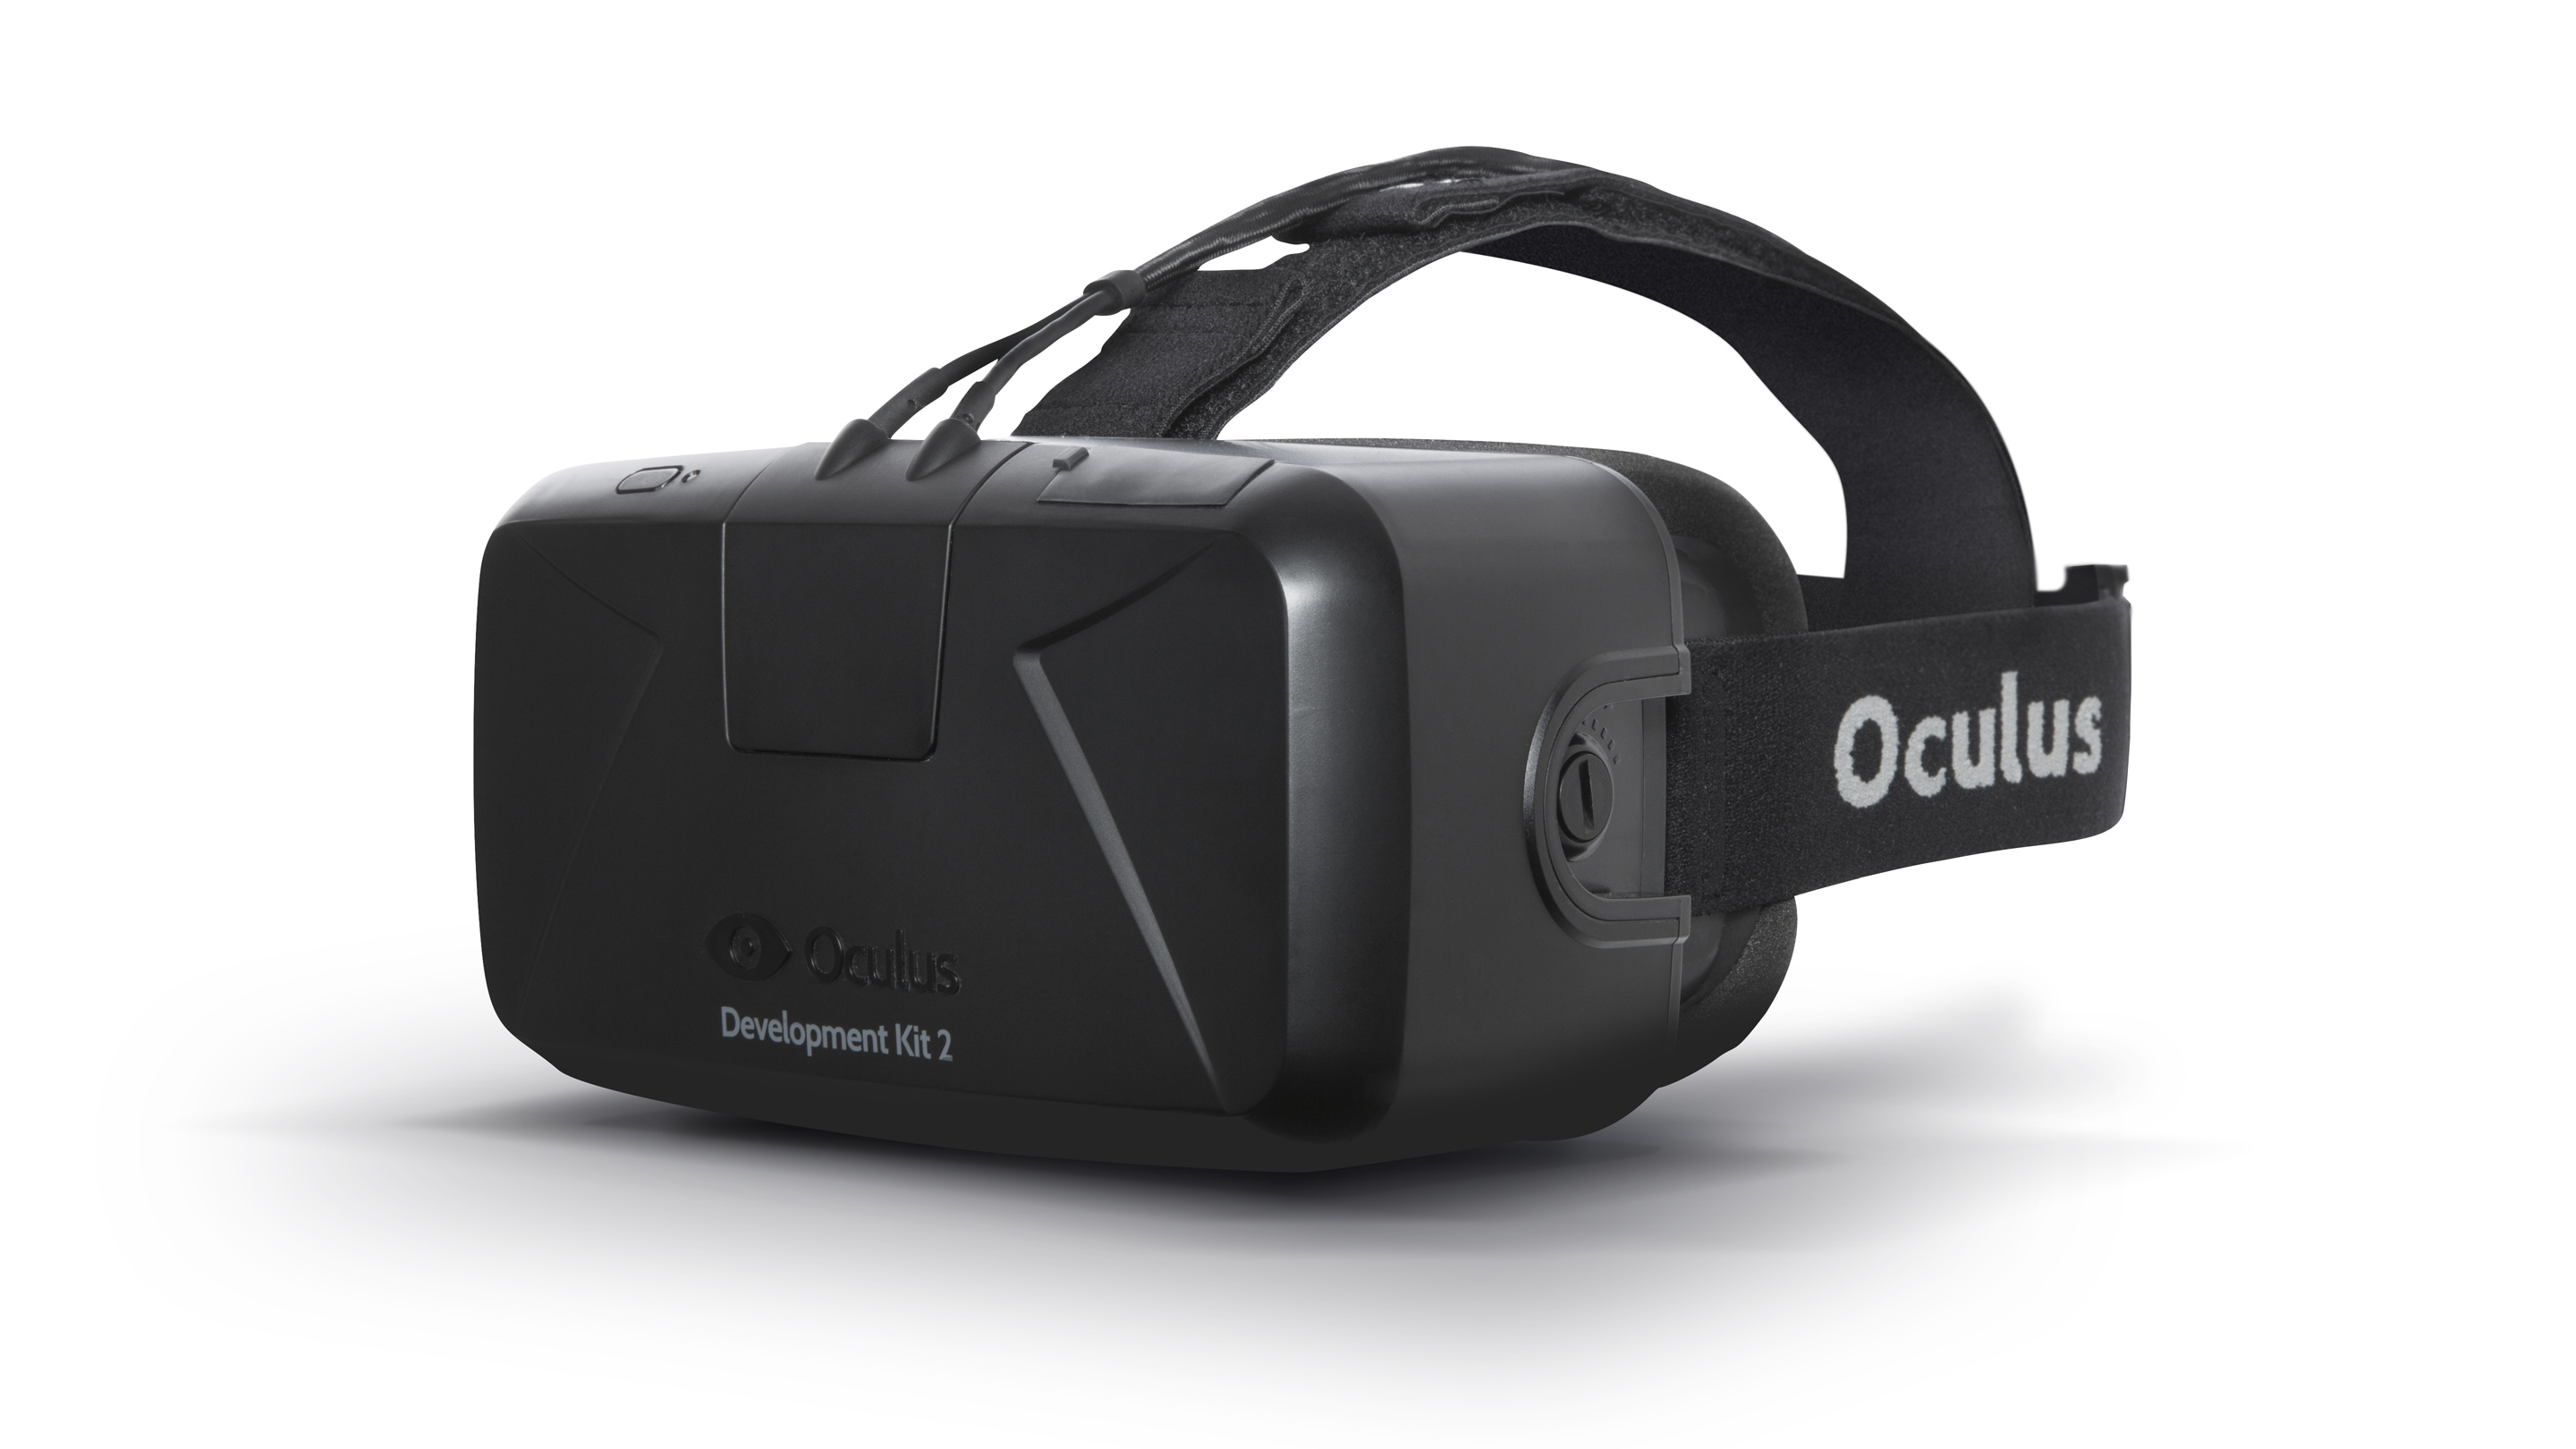 Oculus Rift's second development kit, which has many of the features consumers will end up using.